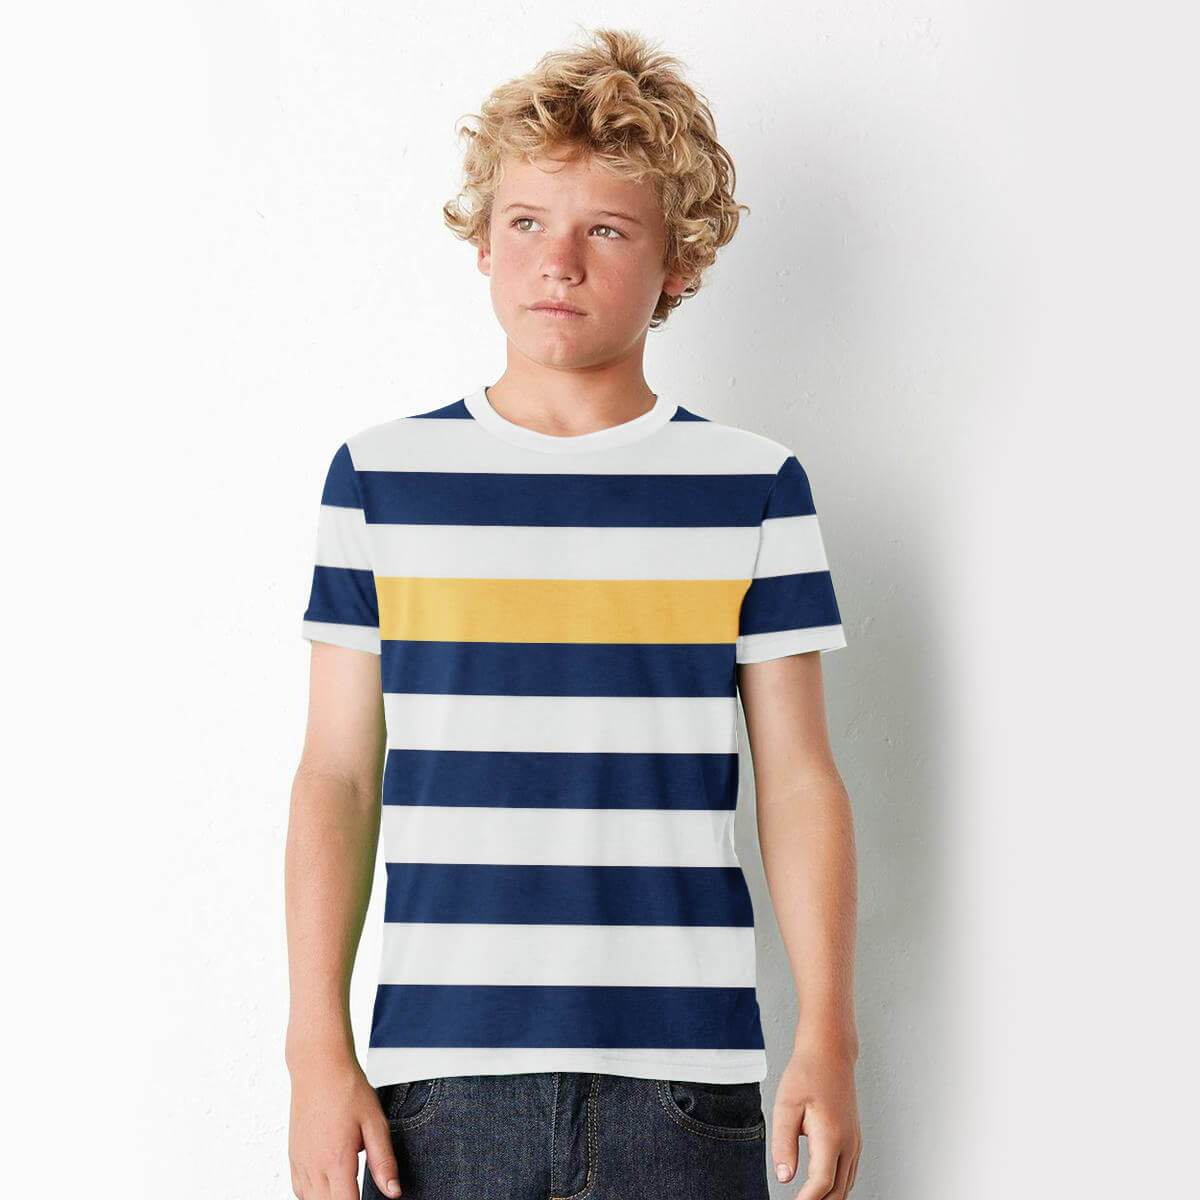 Stone Harbor Kid's T-Shirt White / 2-3 Years Boy's Stone Harbor Color Stripes Short Sleeve Tee Shirt